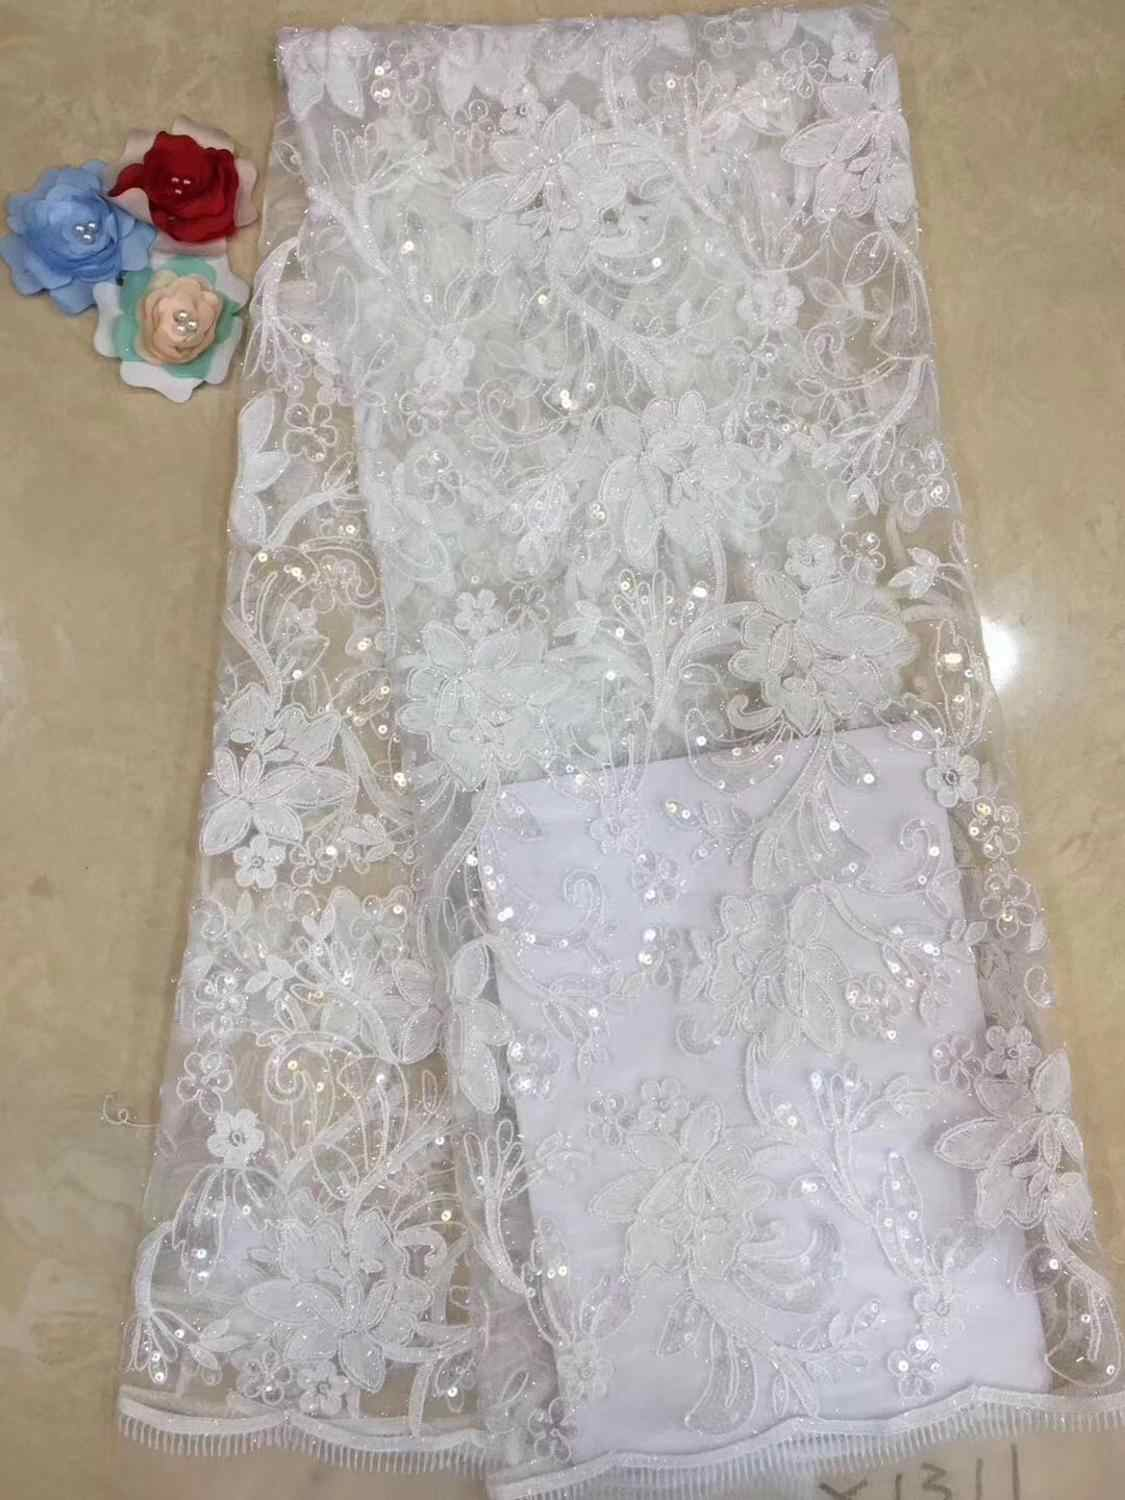 2019 Big floral embroidery pure white french lace Guipure solid African tulle fabric High Quality Soft Skin Healthy 5 yards F6J